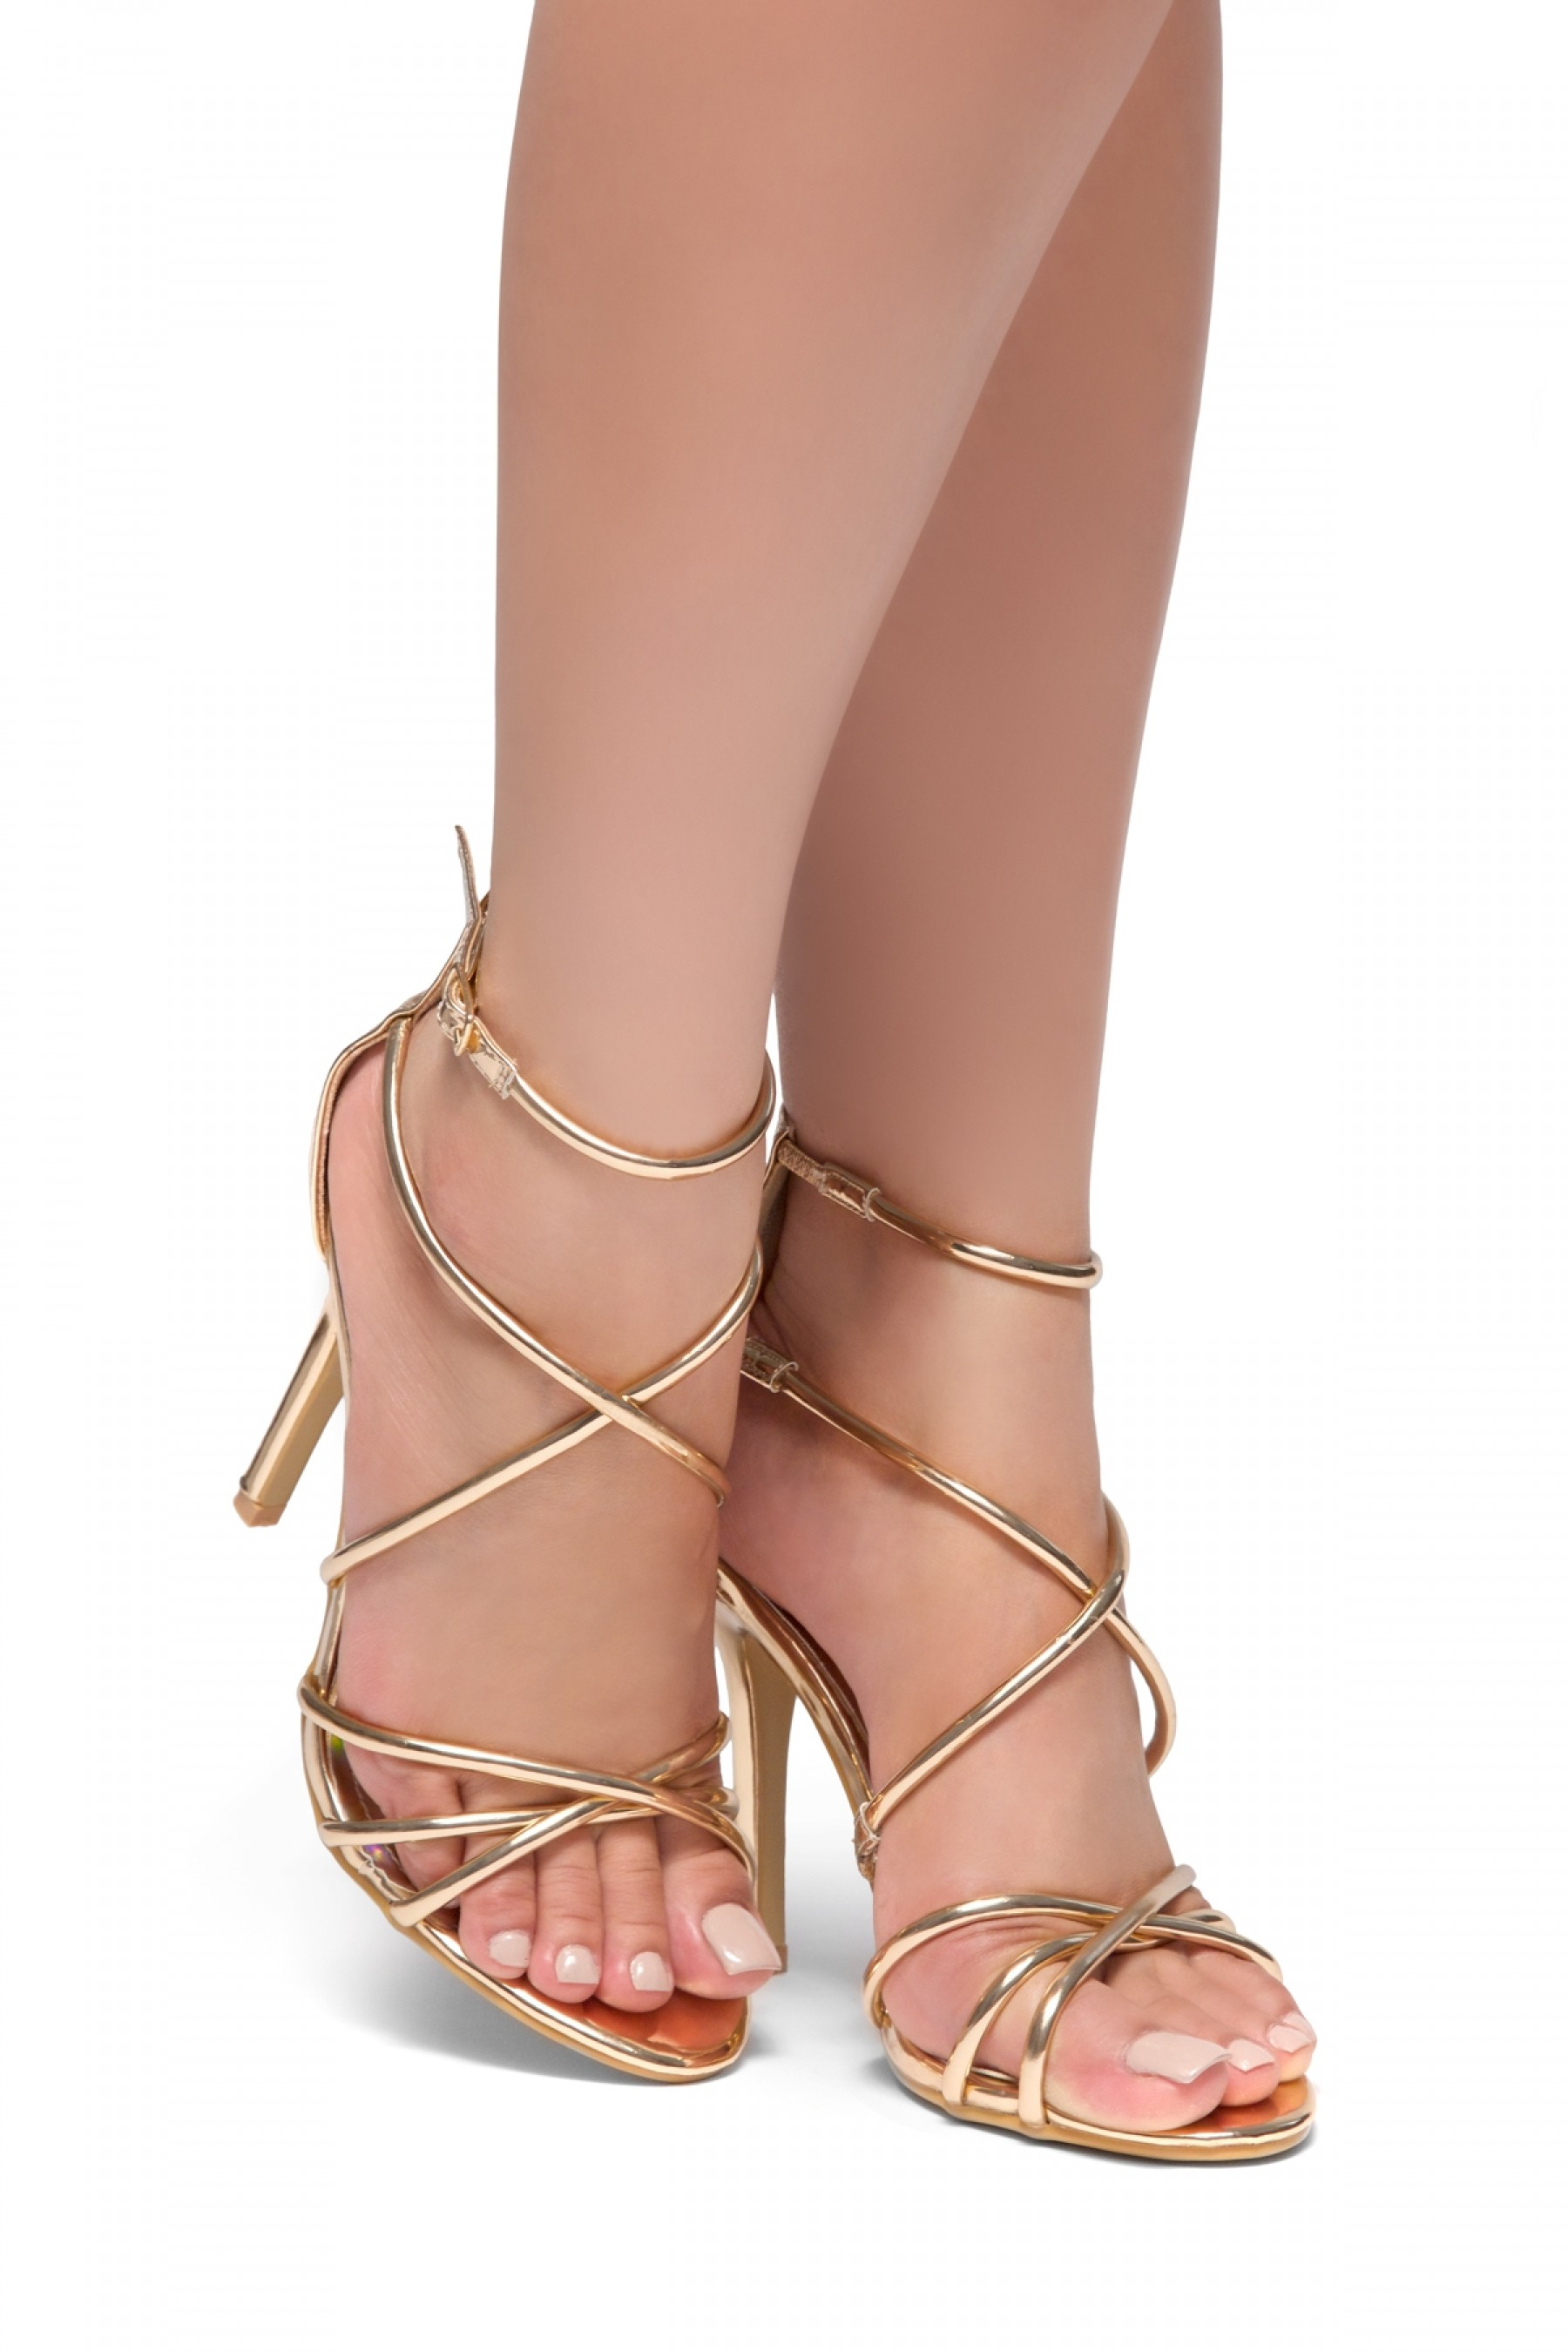 anklet heeled sandals tie gold gladiator ankle missguided